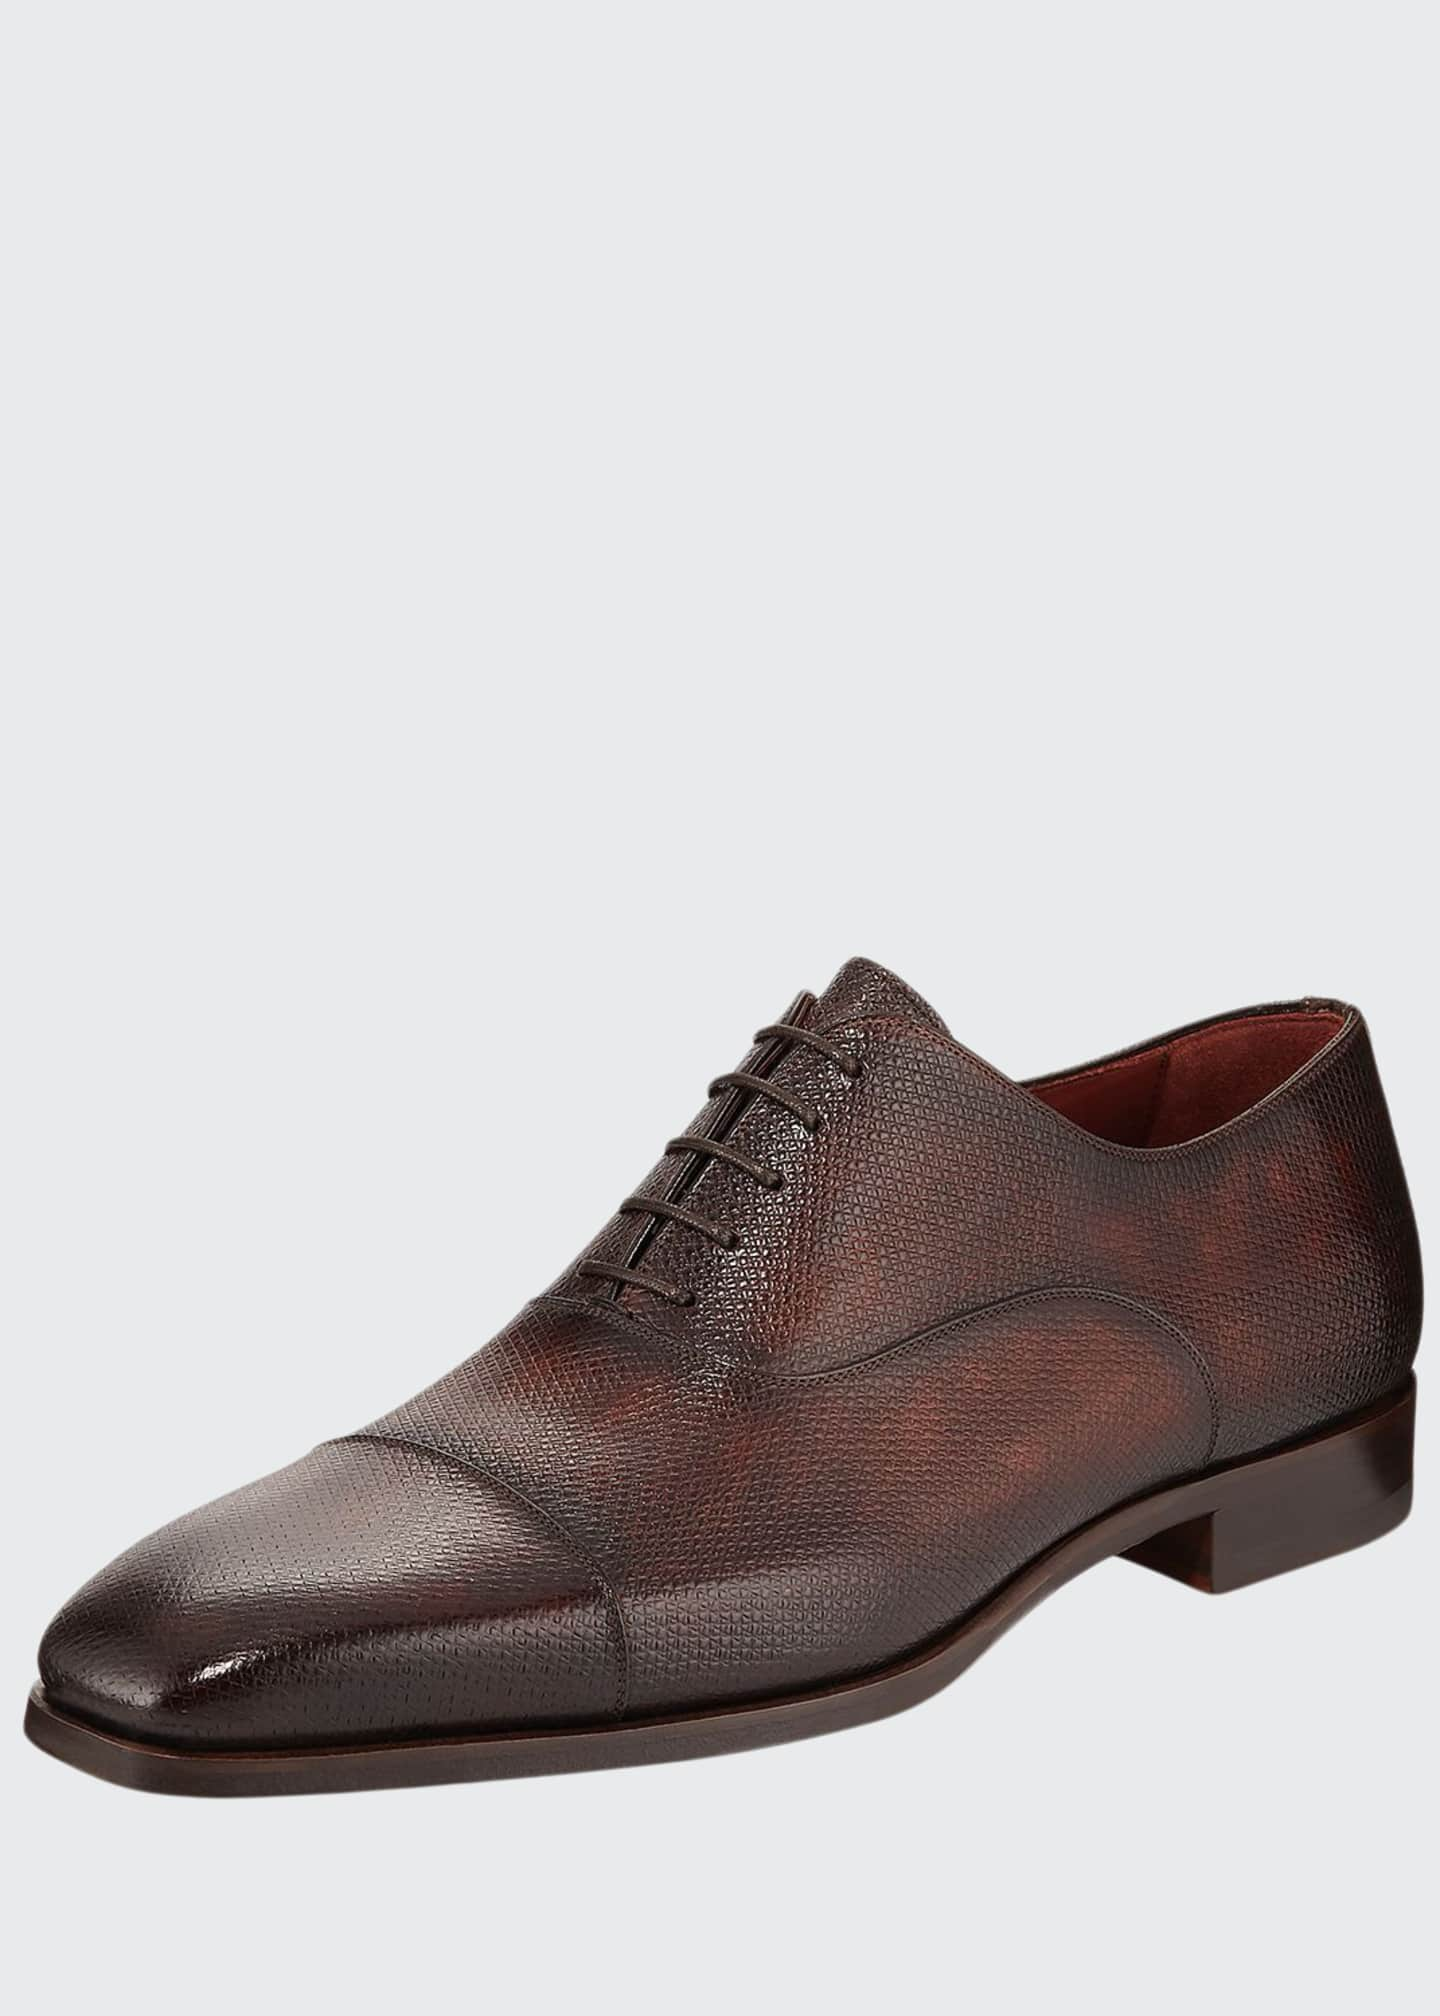 Magnanni Textured Balmoral Lace-Up Shoe